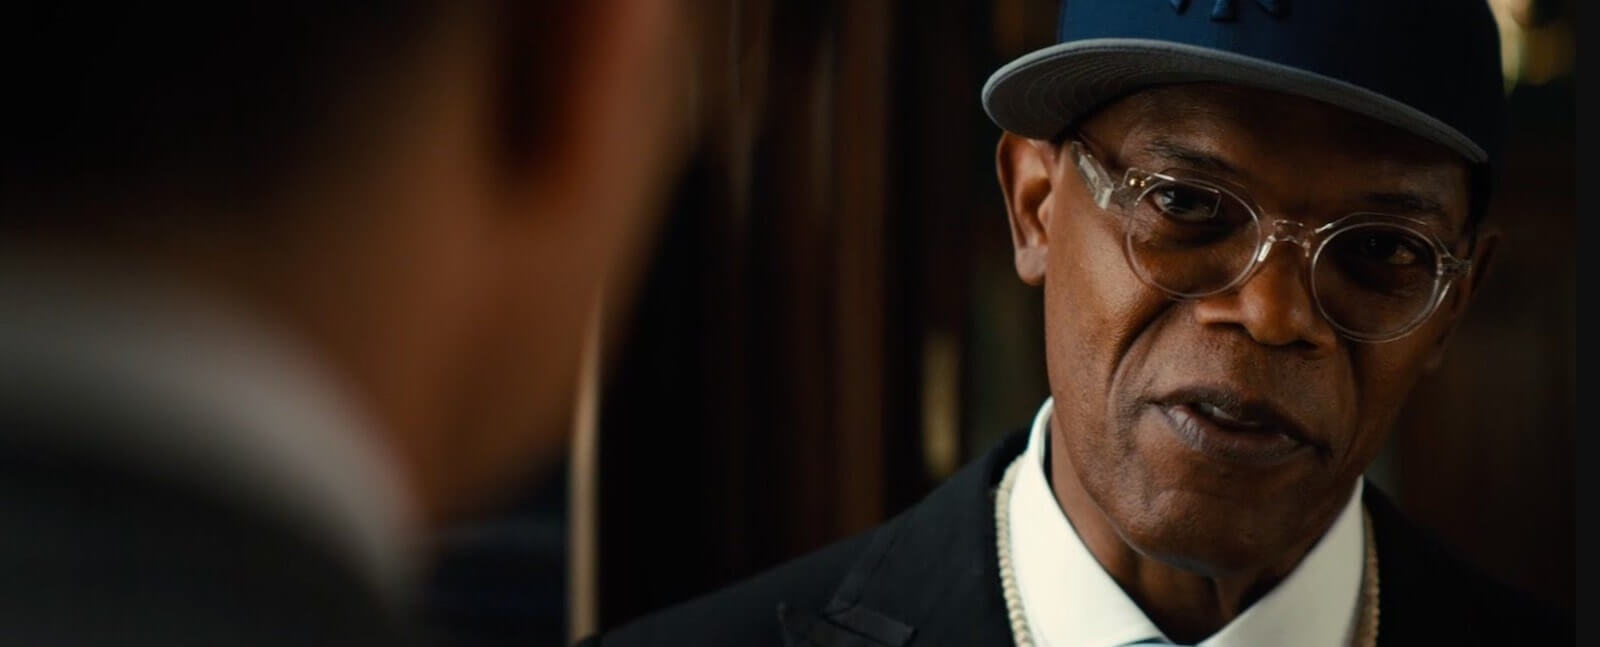 How to Write and Shoot Action Scenes Like Kingsman - Sam Jackson